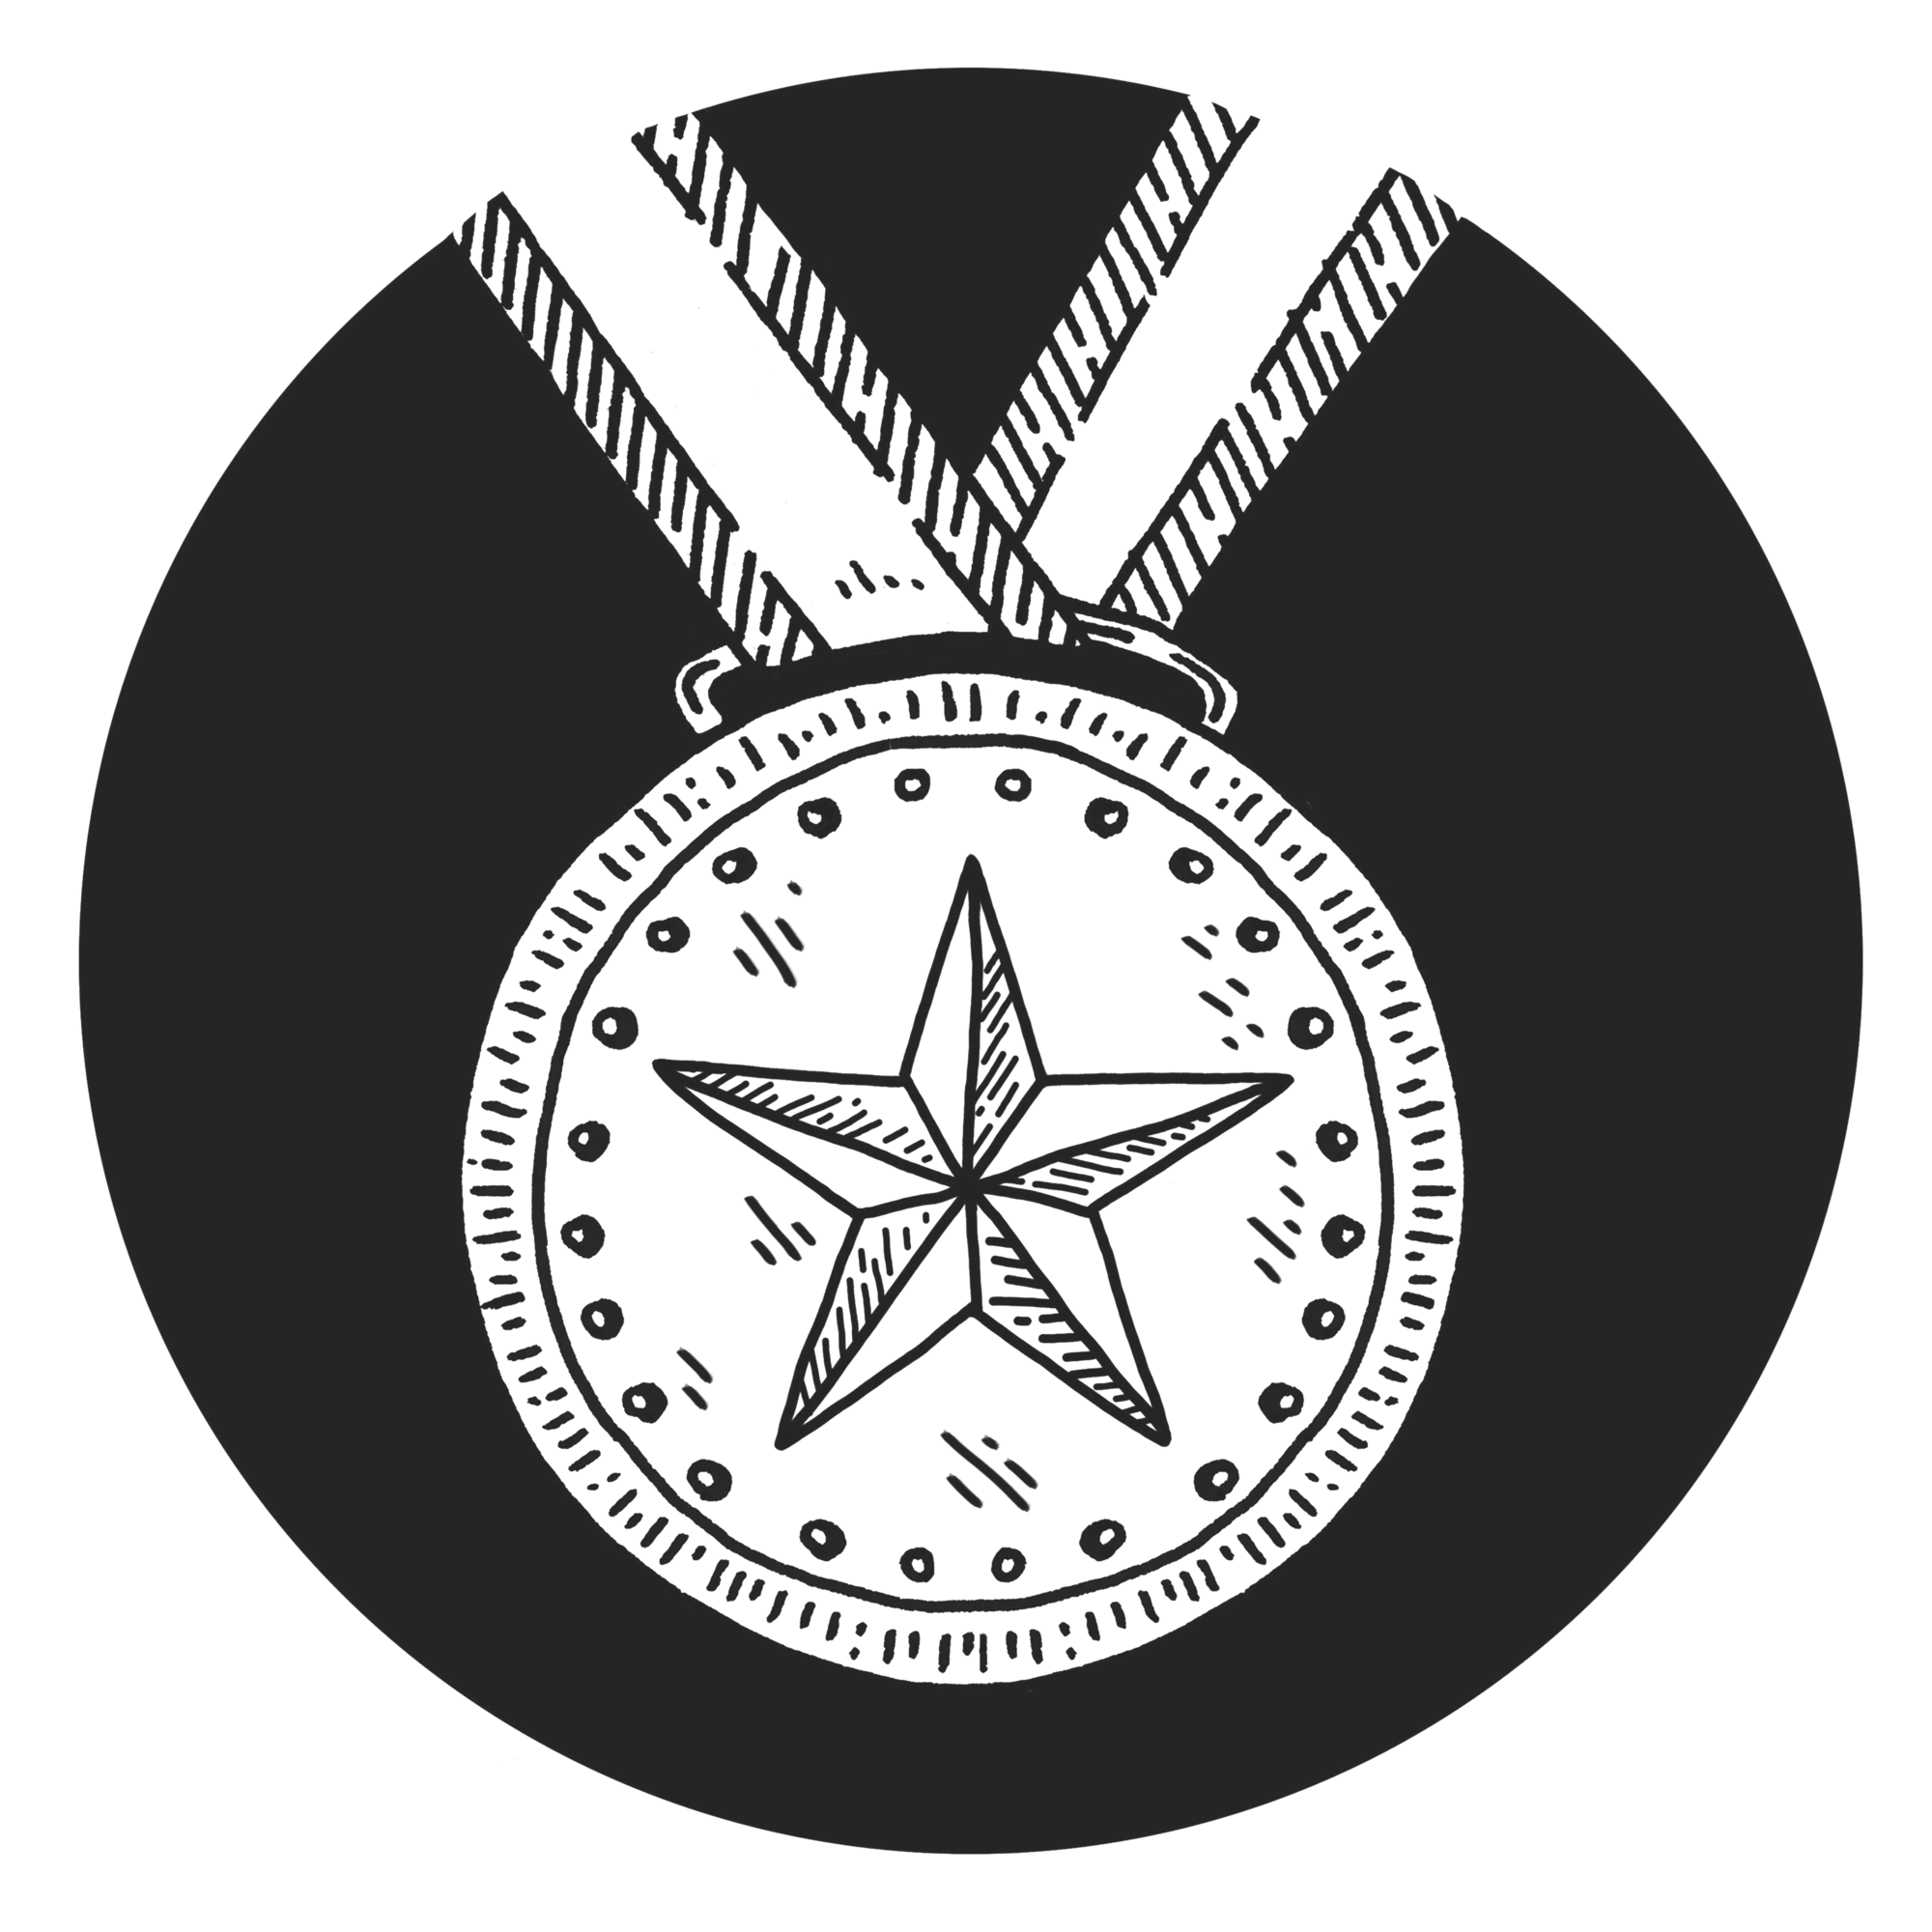 Medal-On-Ribbon